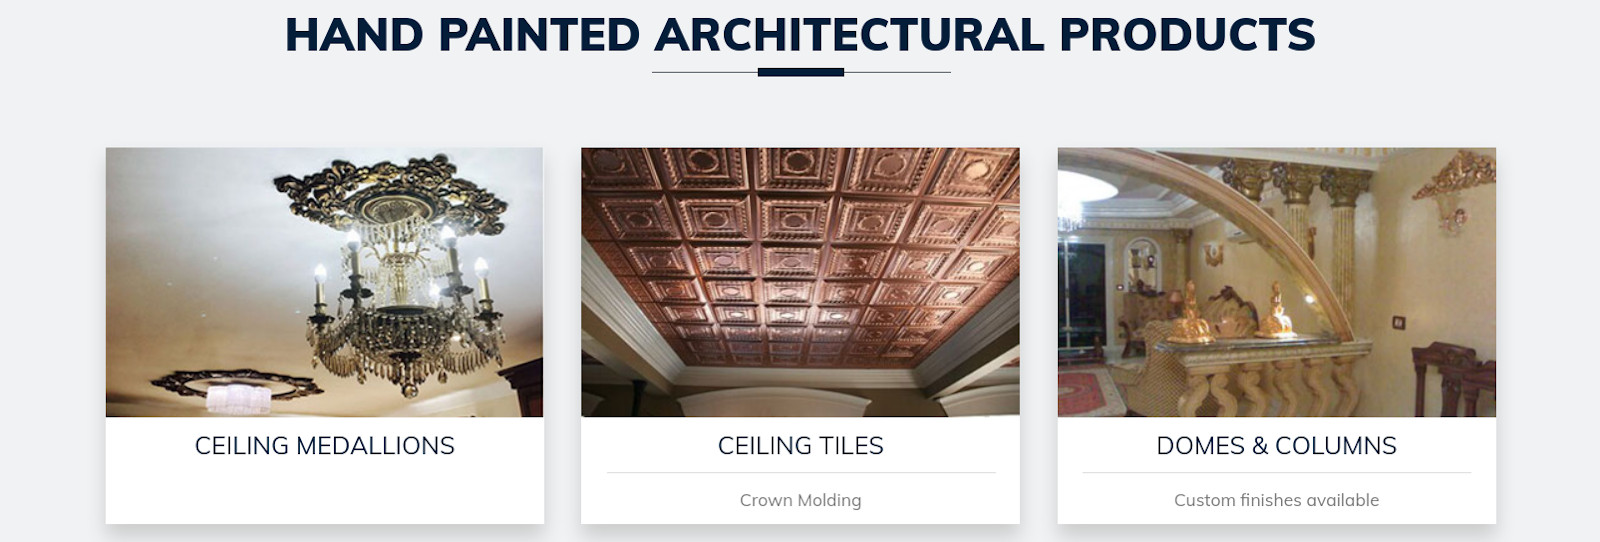 Hand painted architectural products